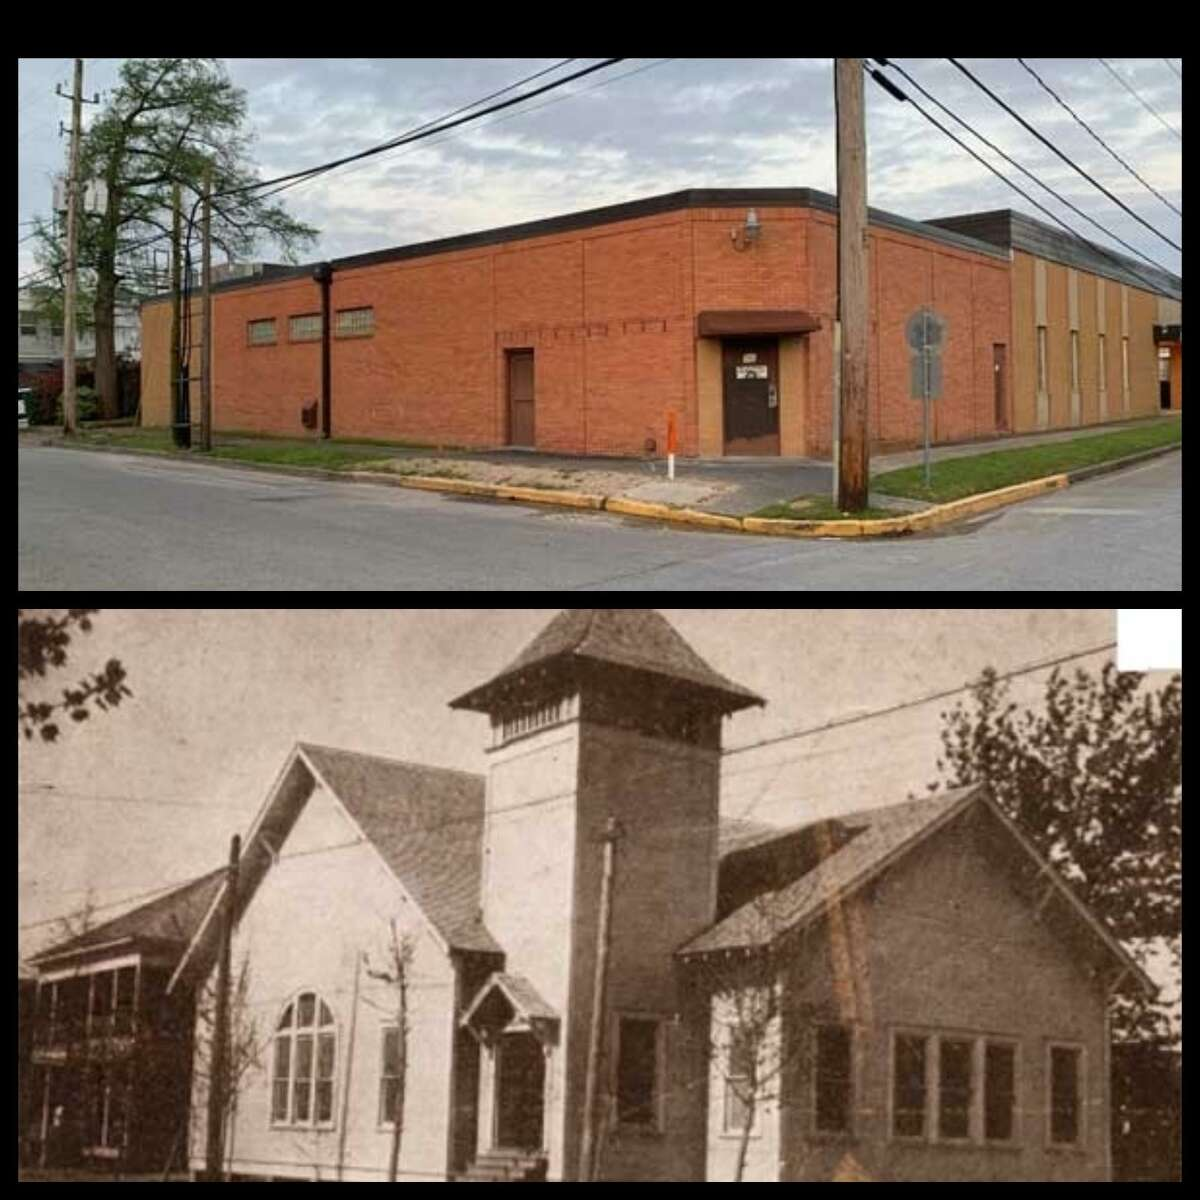 Orginally owned by the Higgins Oil & Fuel Company, the First Christian Church was sold in 1917 and later became the the Humble Branch of the Harris County Public Library in 1926.